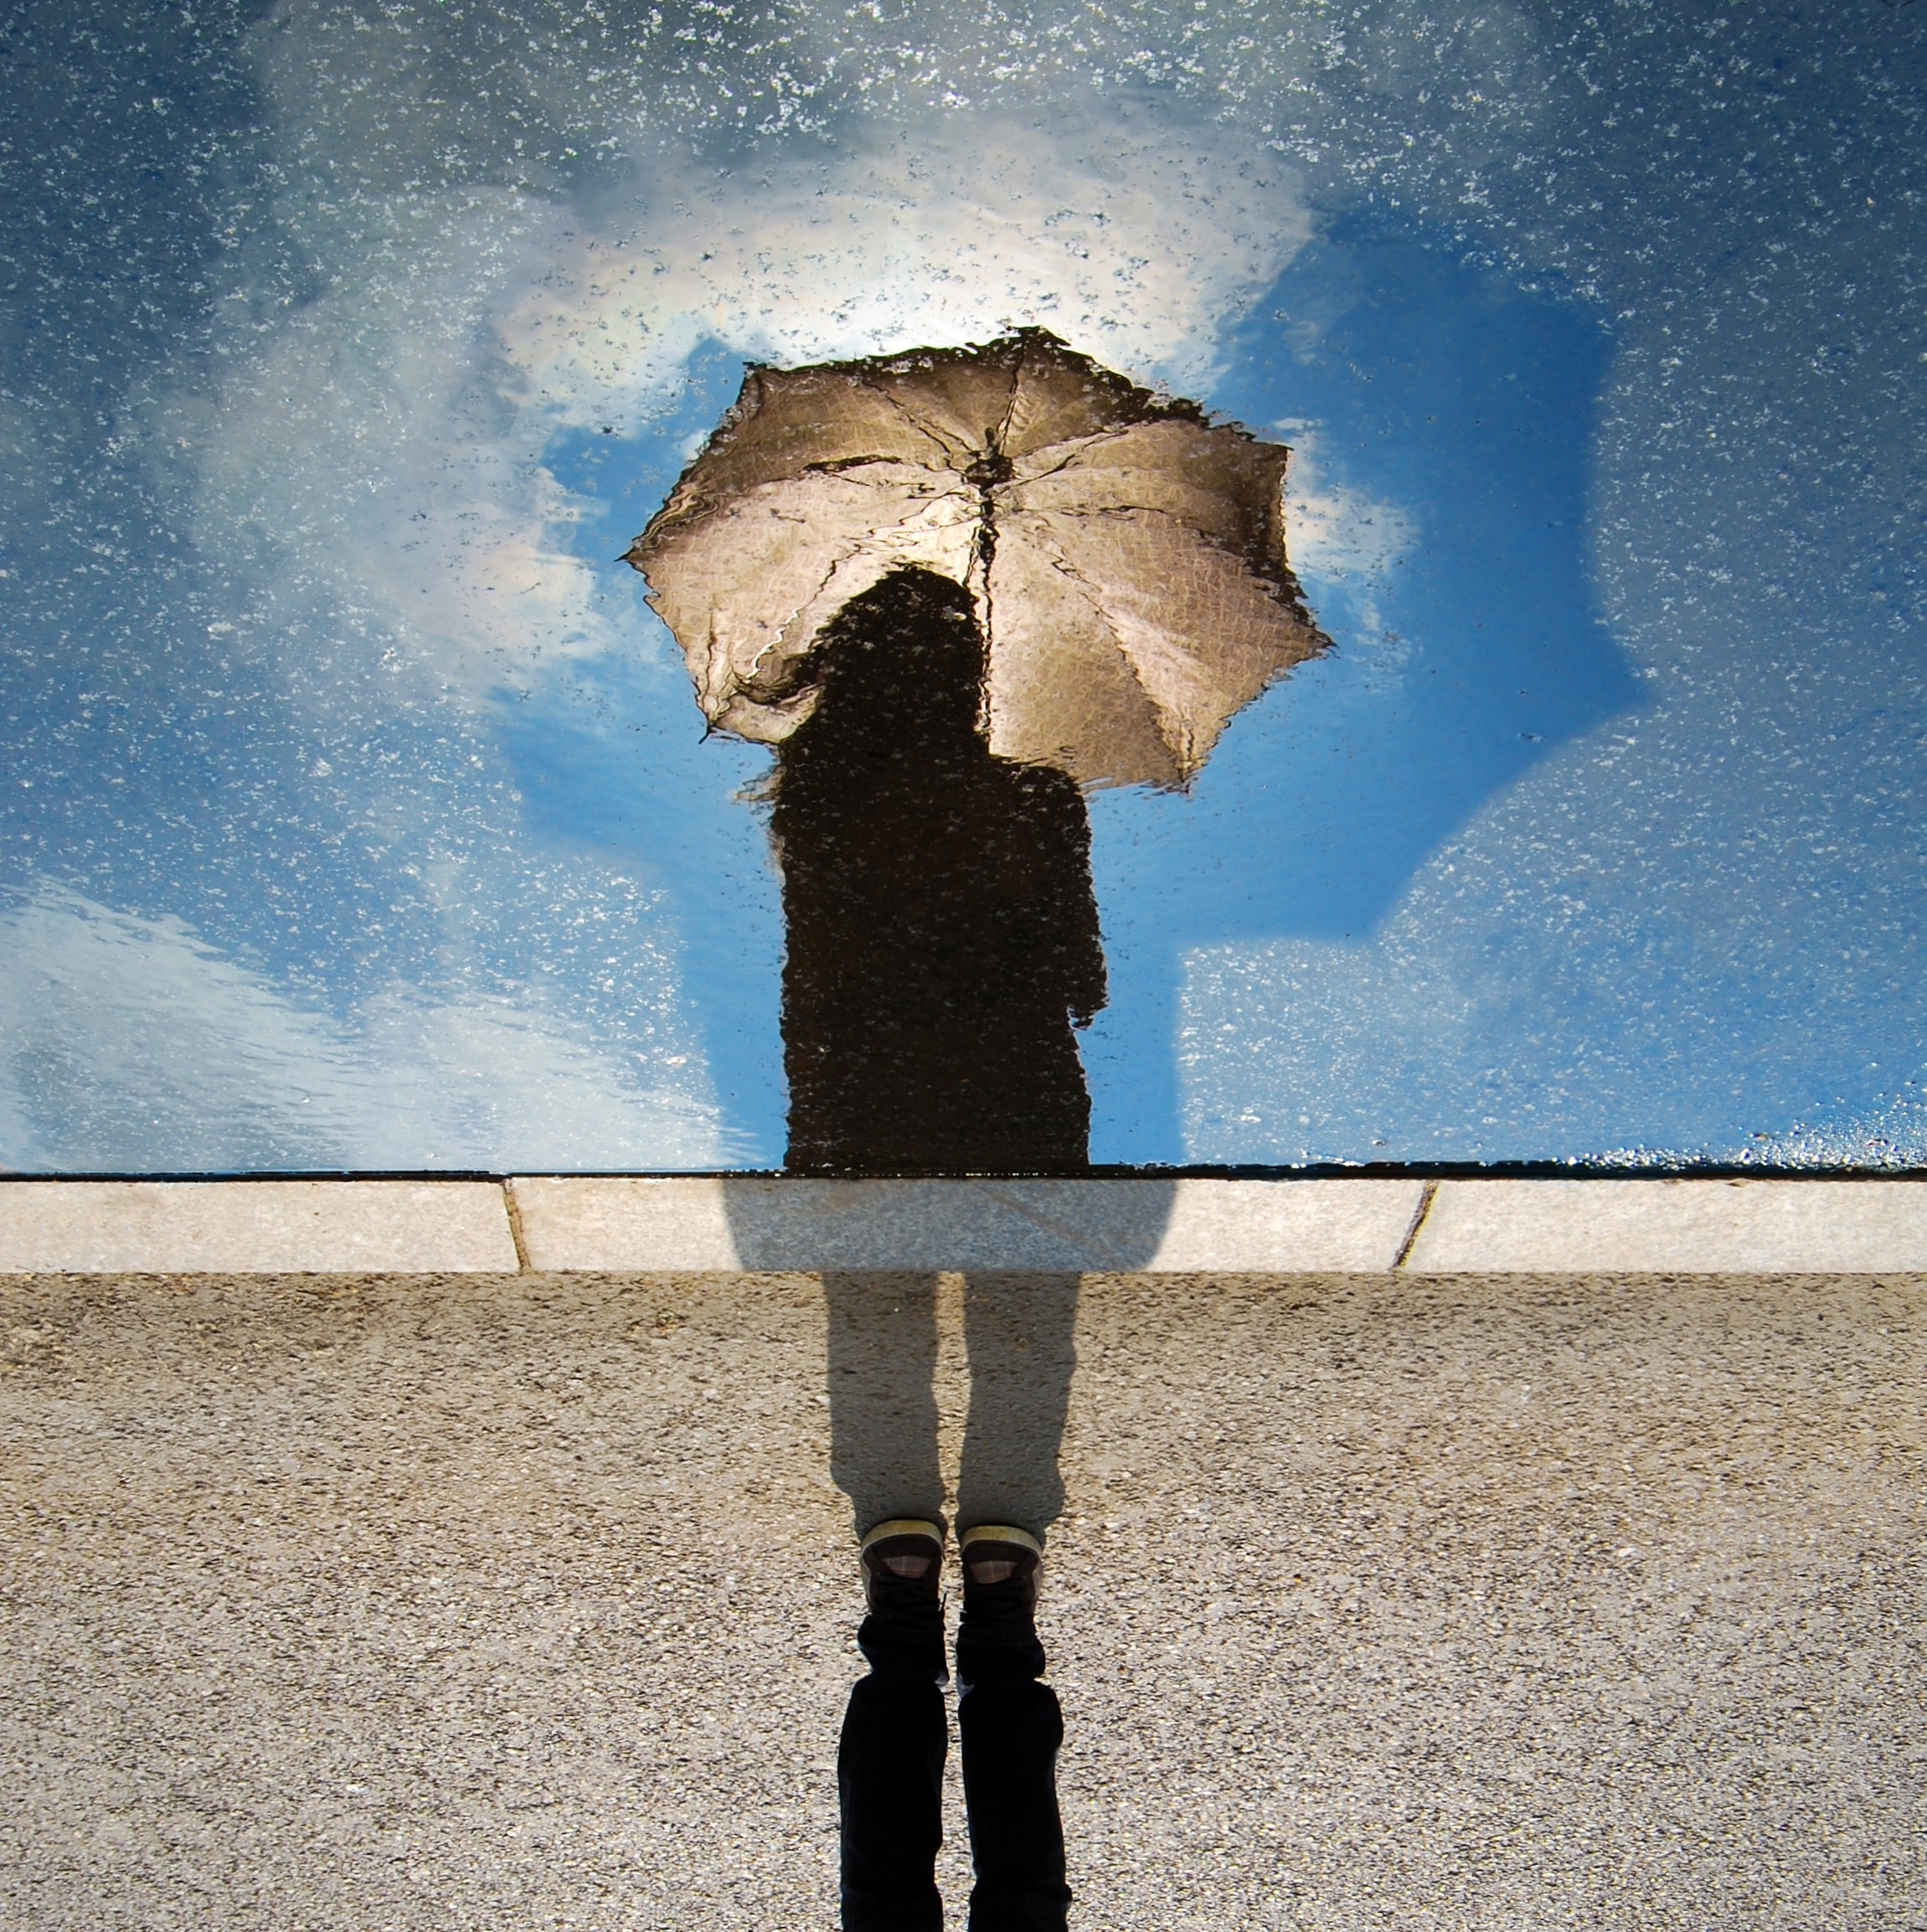 person standing on gray surface while holding umbrella